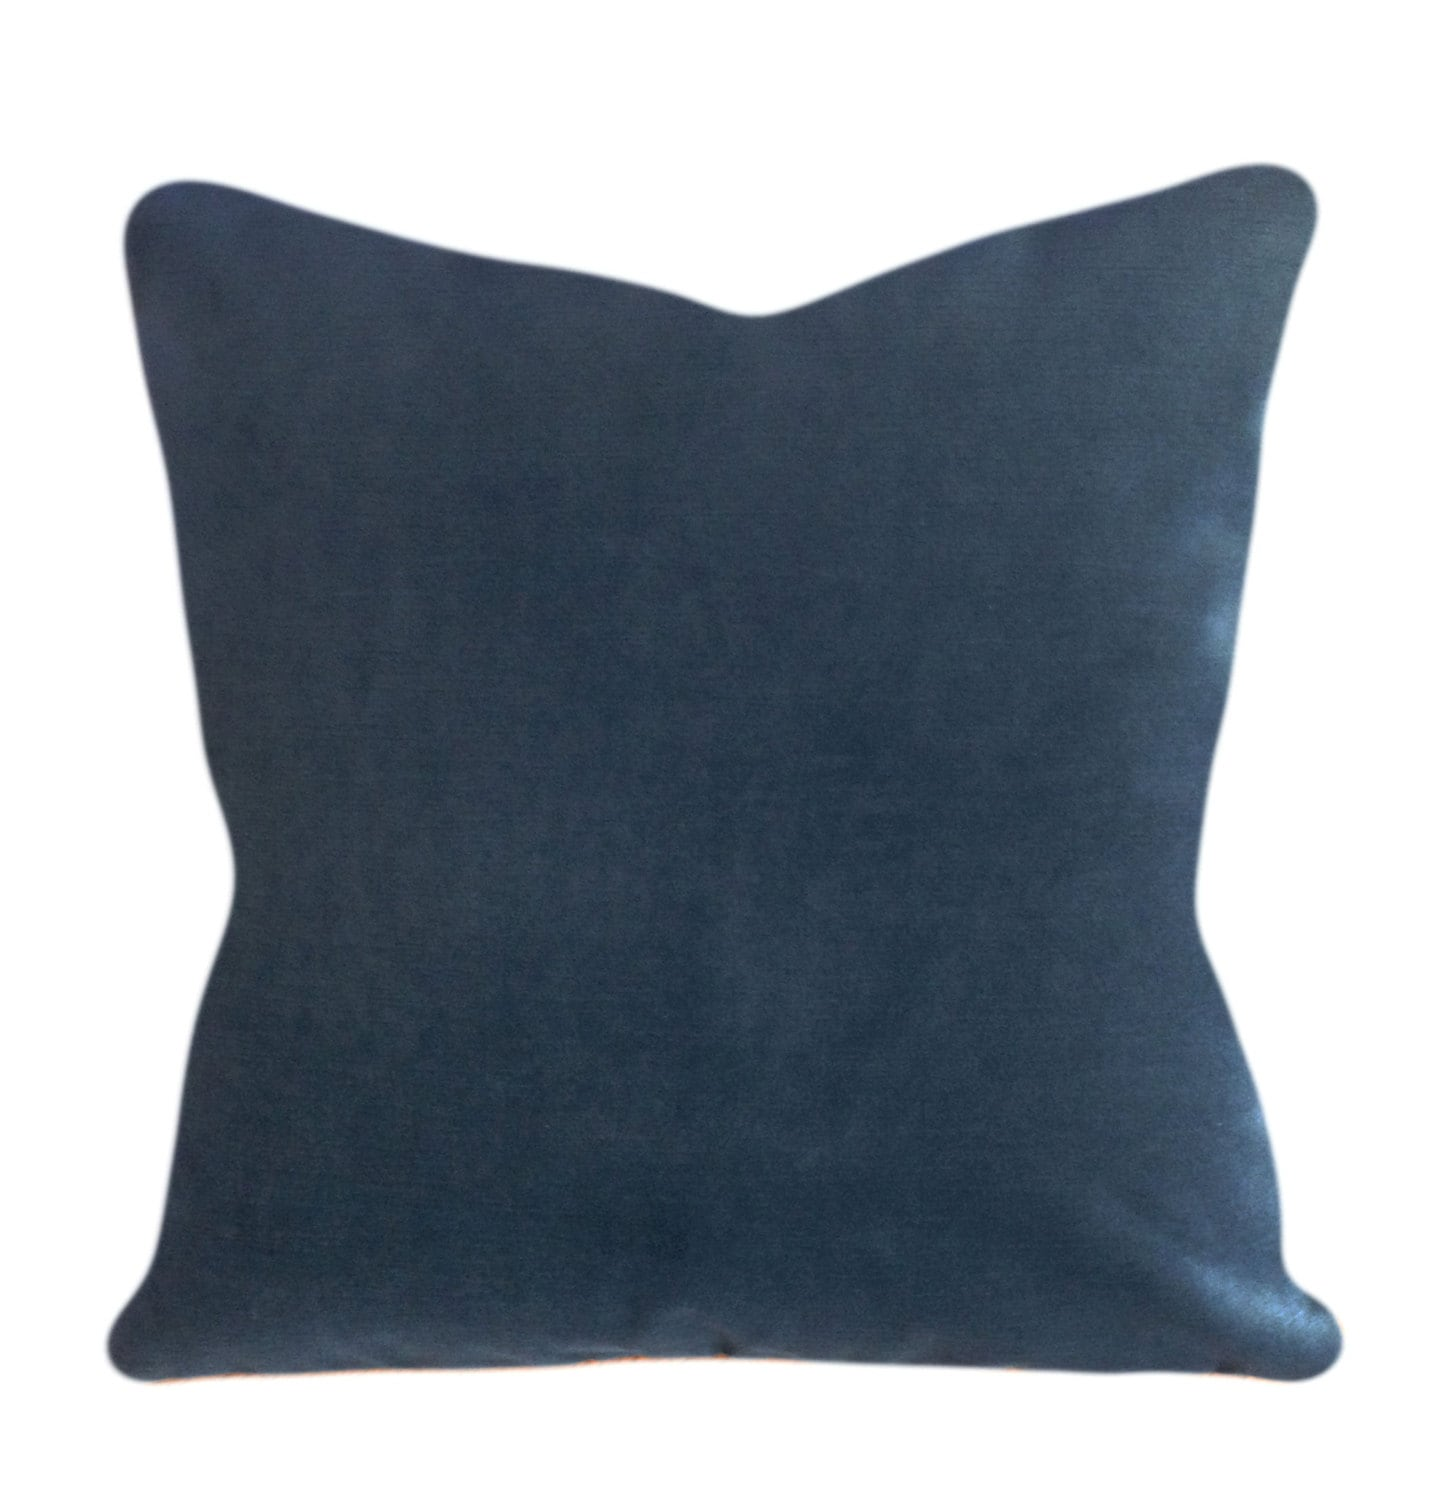 Peacock Blue Throw Pillow : Blue Velvet Peacock Decorative Pillow Cover by PillowTimeGirls